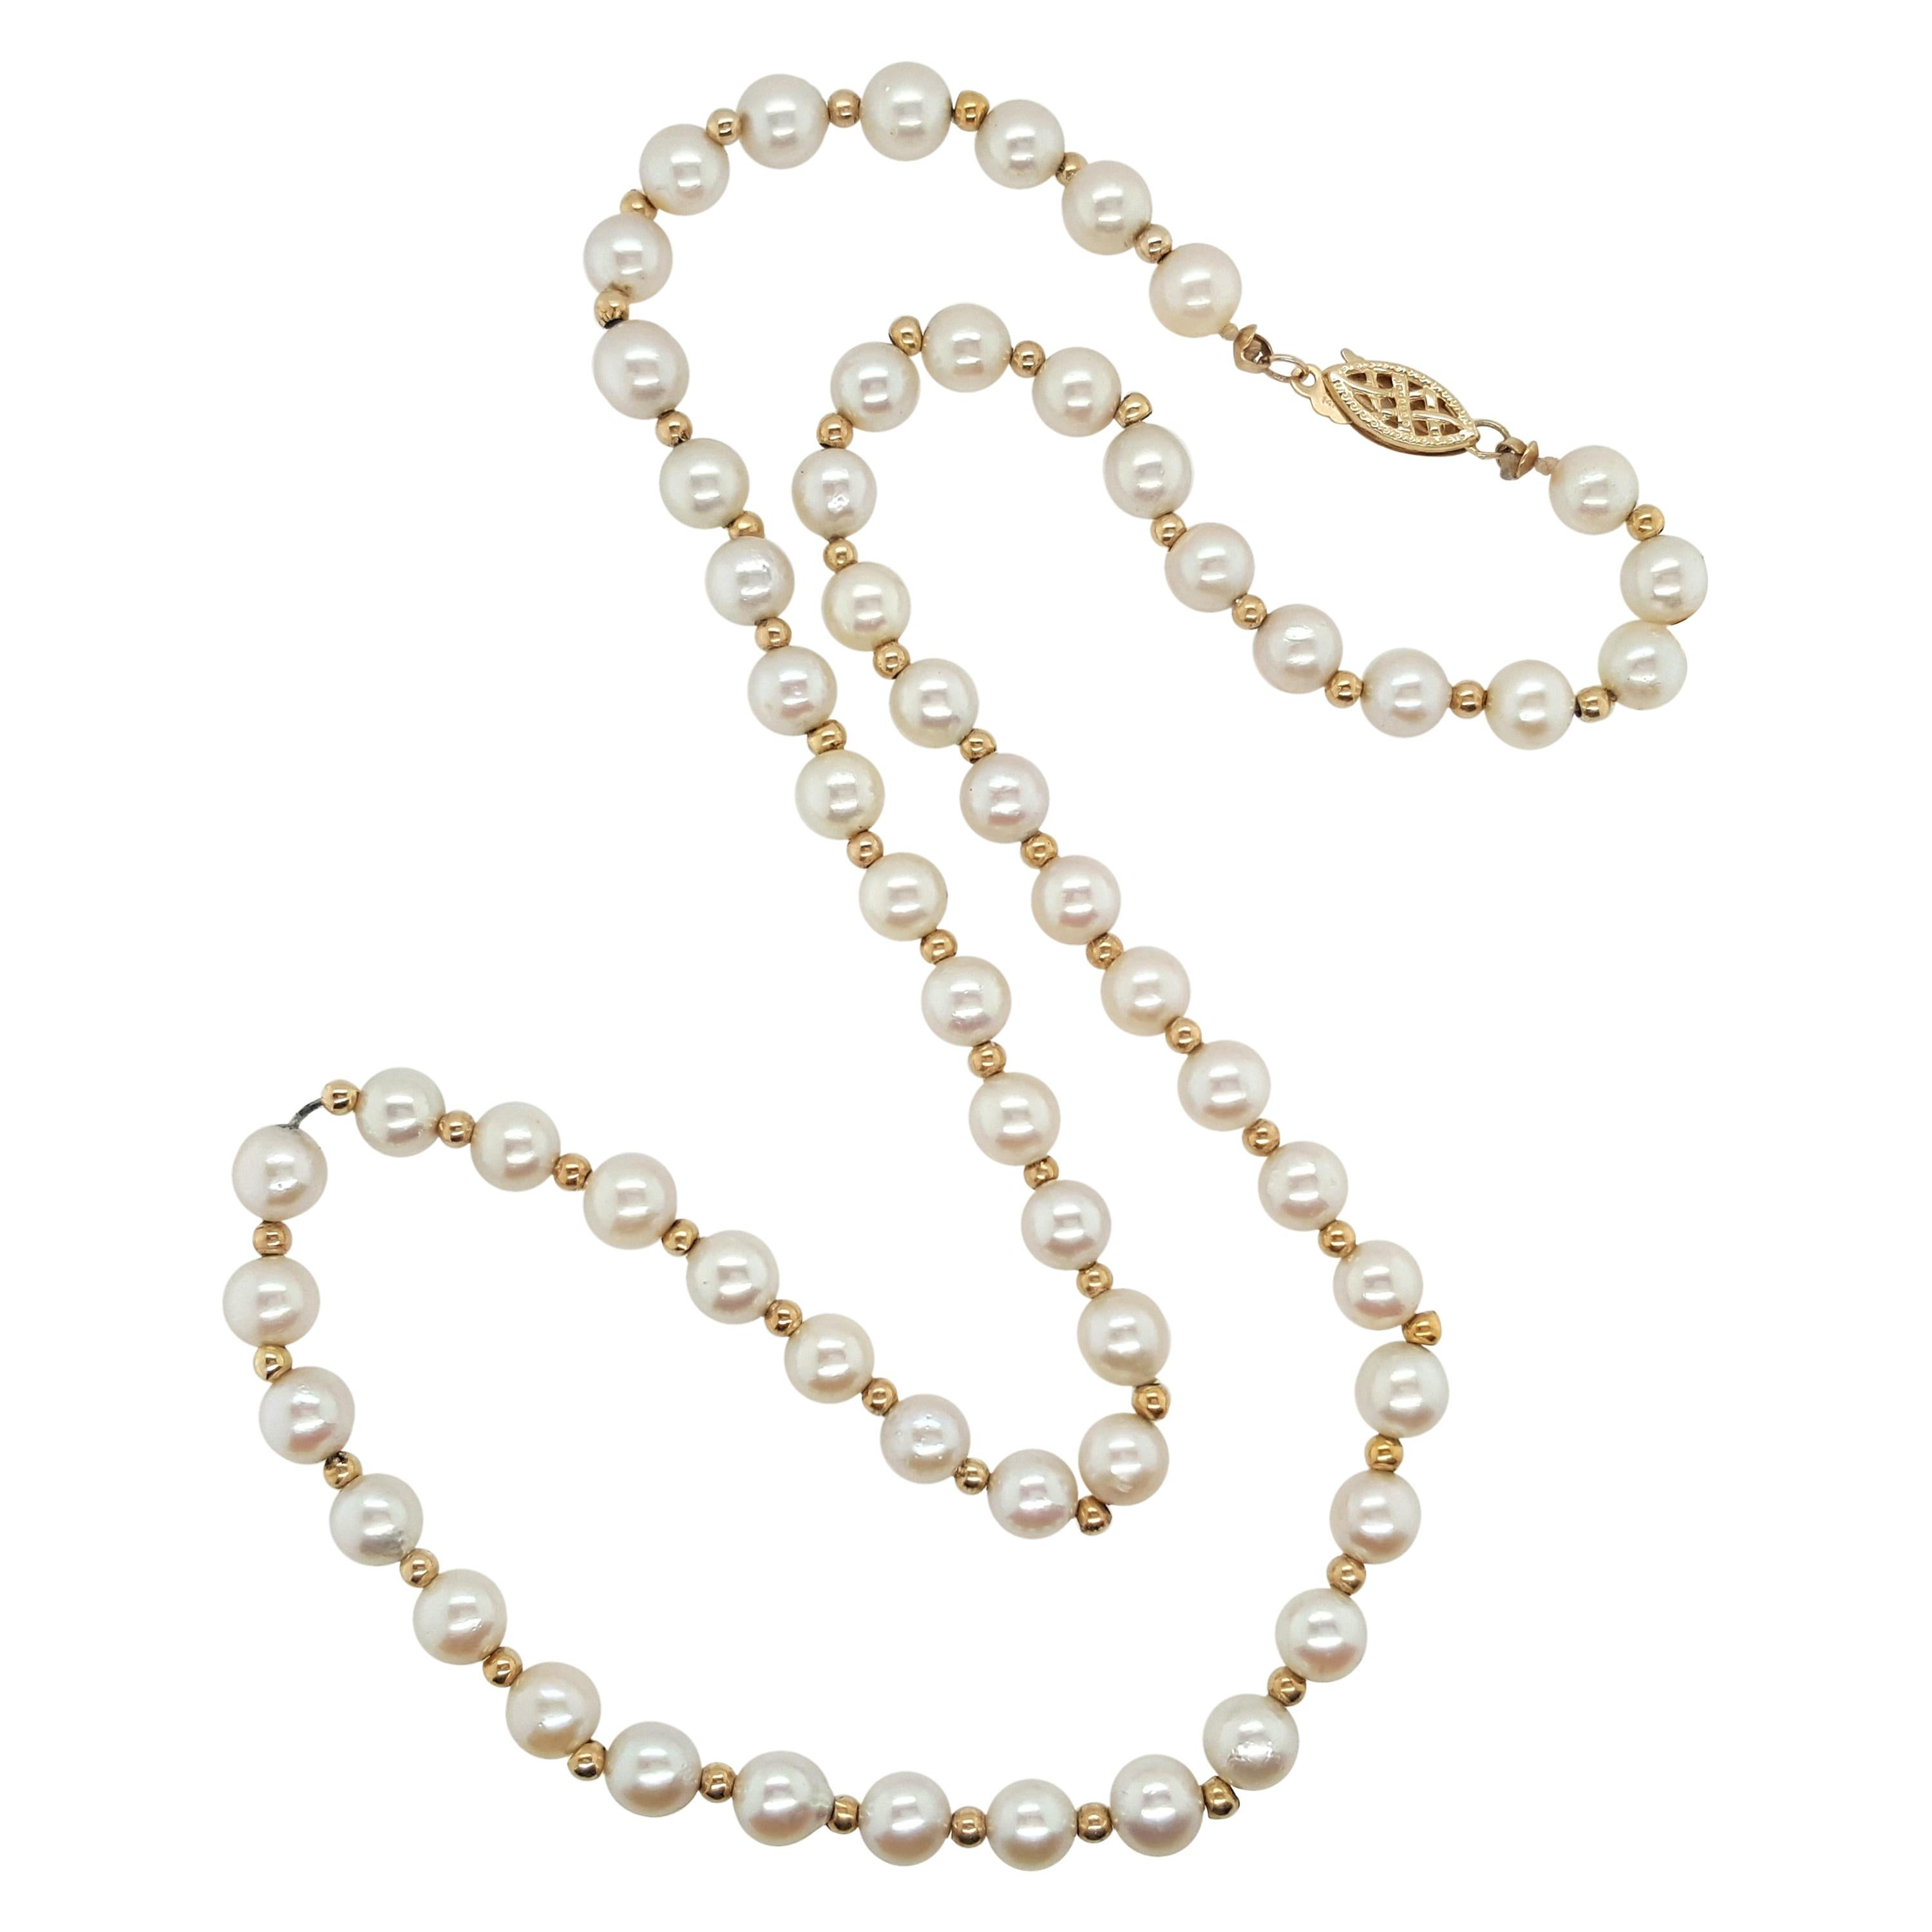 Akoya Pearl Strand Accented by 14 Karat Yellow Gold Beads Necklace